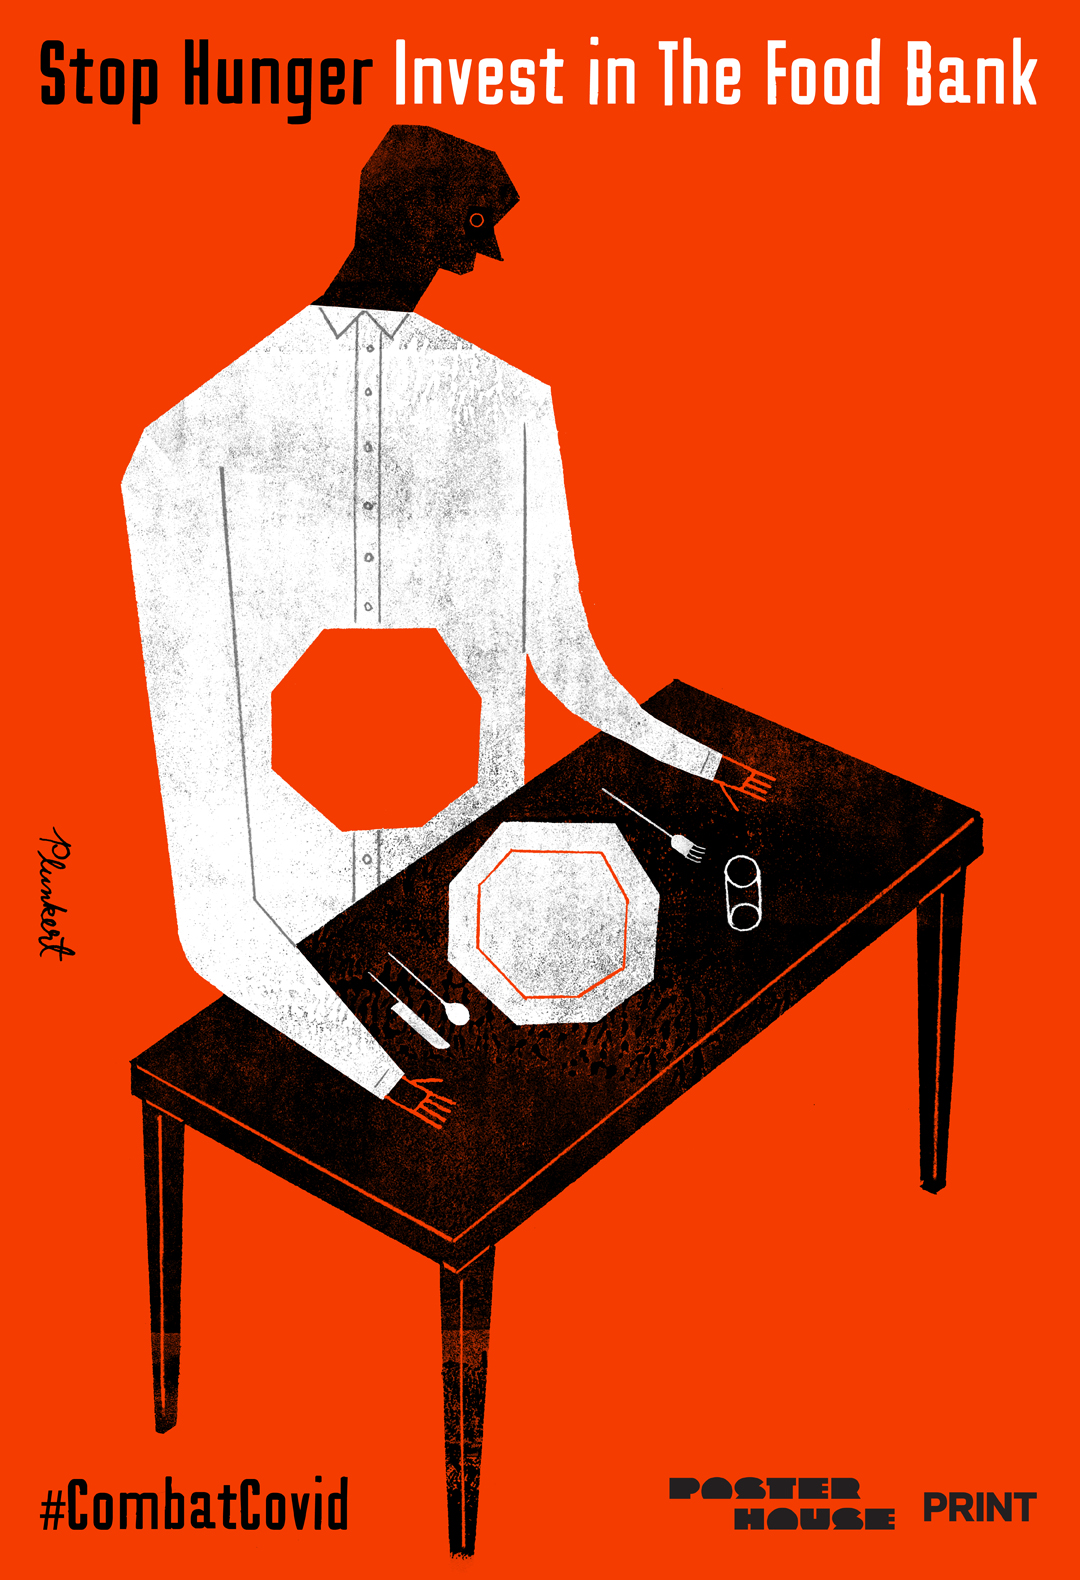 illustrative PSA poster of a figure sitting at a table with an empty plate and stomach